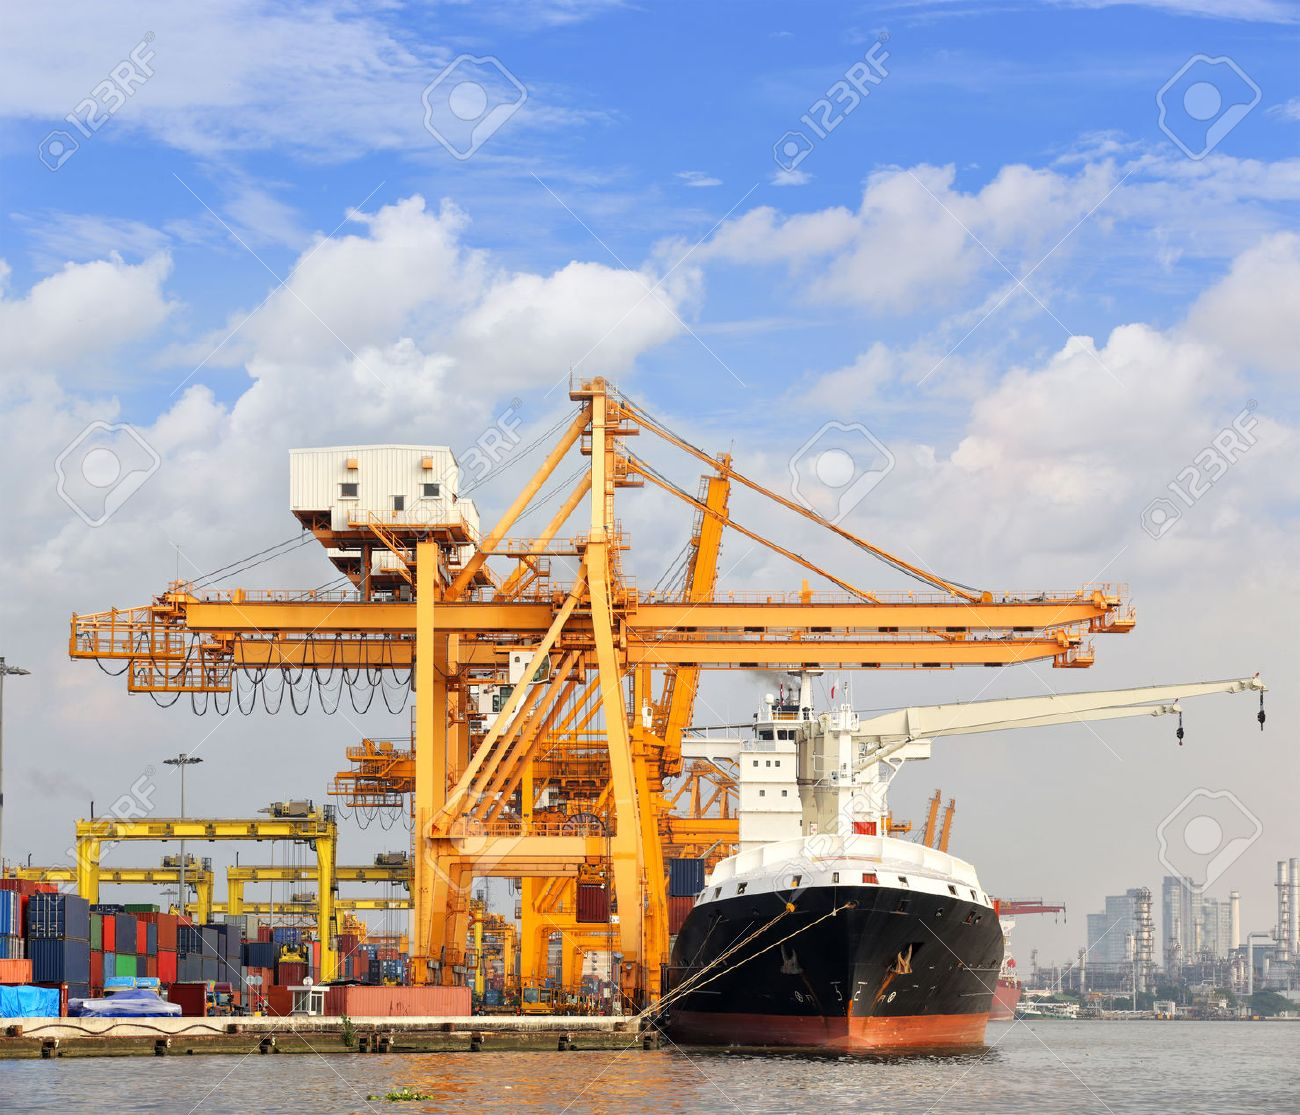 Cargo ship at the port with blue sky - 23283478